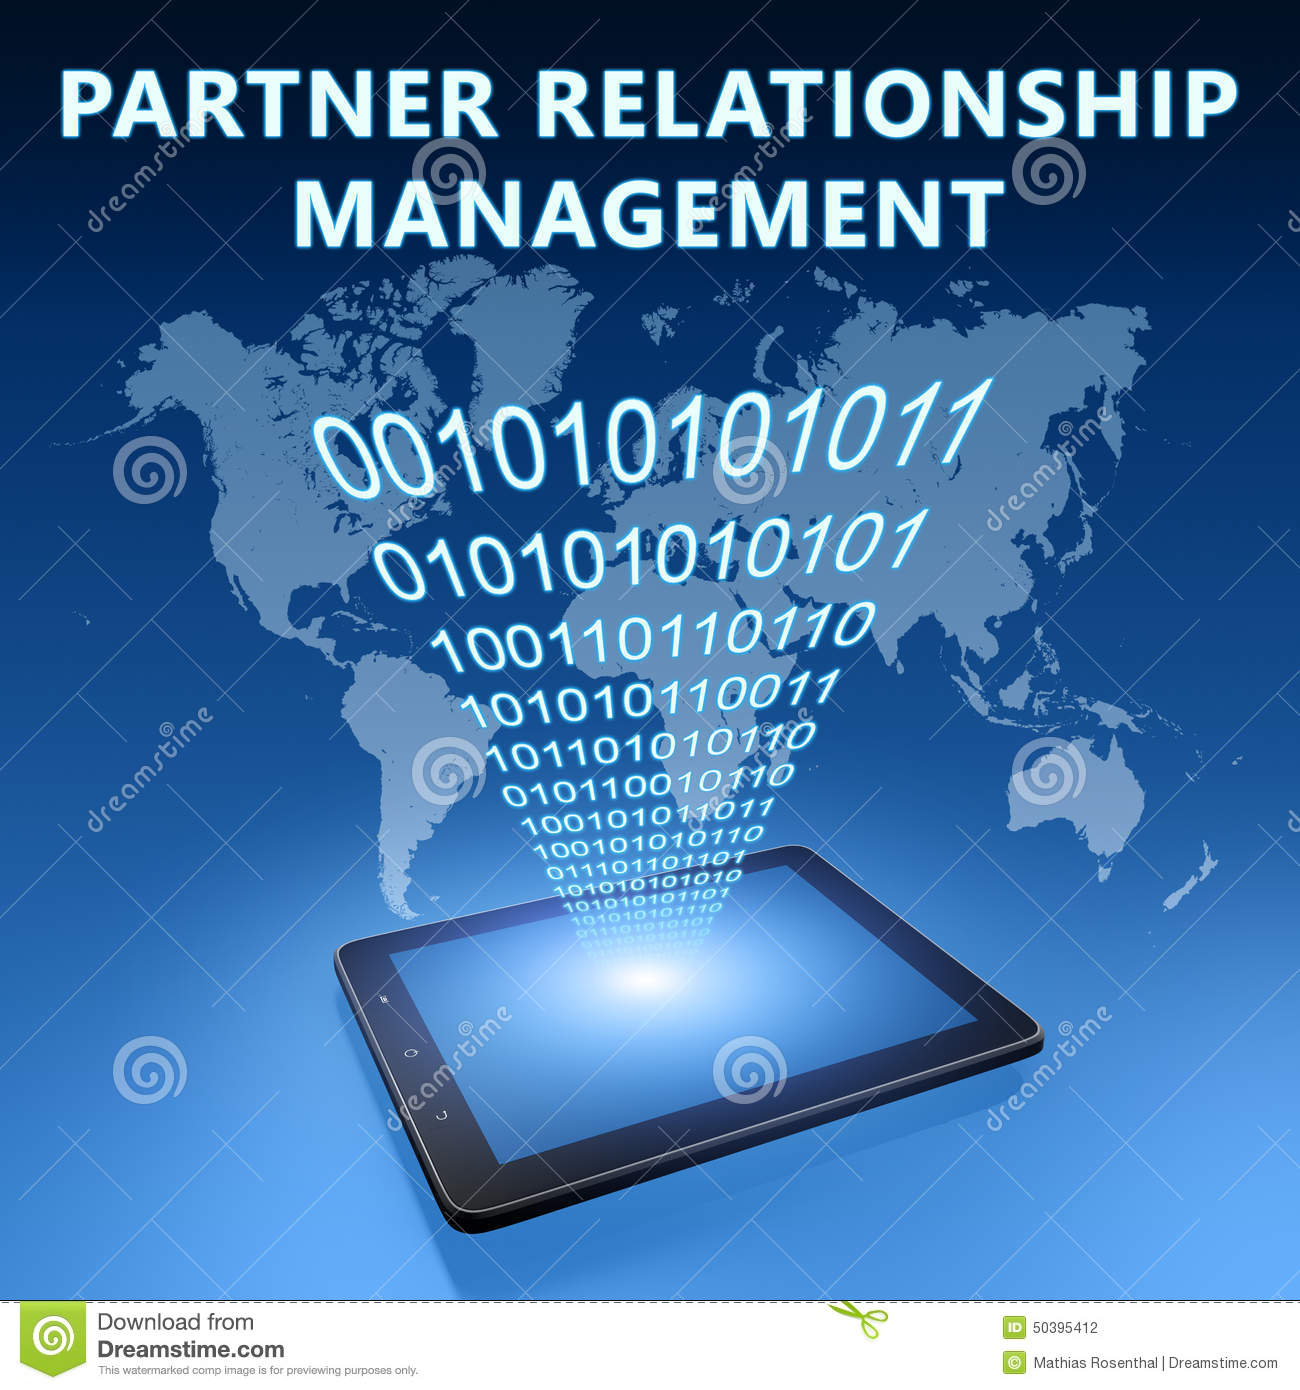 Full HD Partnership relationship management Wallpapers, Android ...